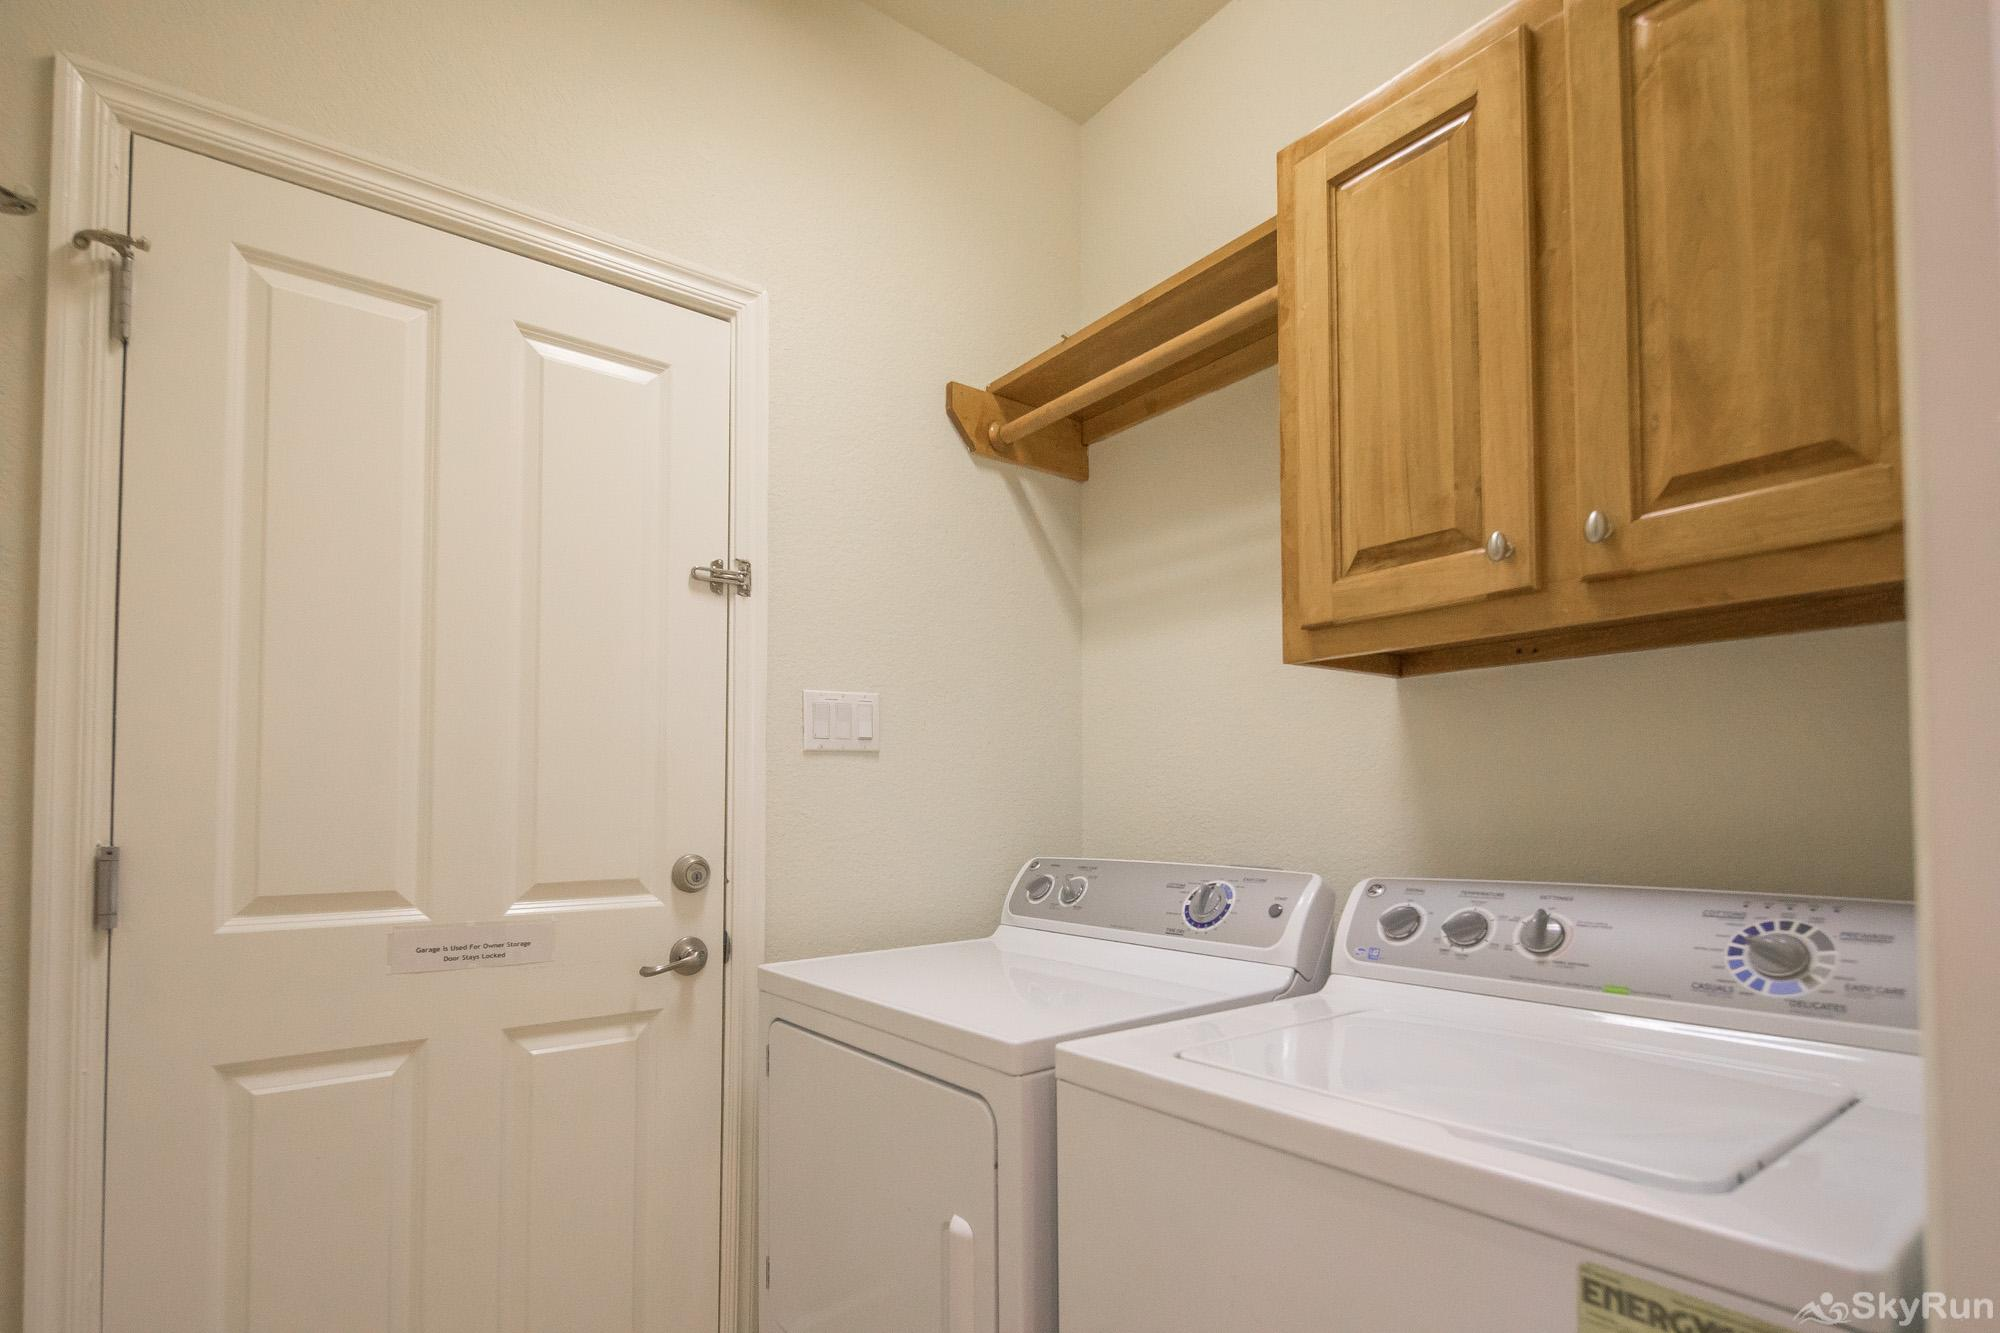 LAKESIDE HAVEN Washer and Dryer Available for Guest Use